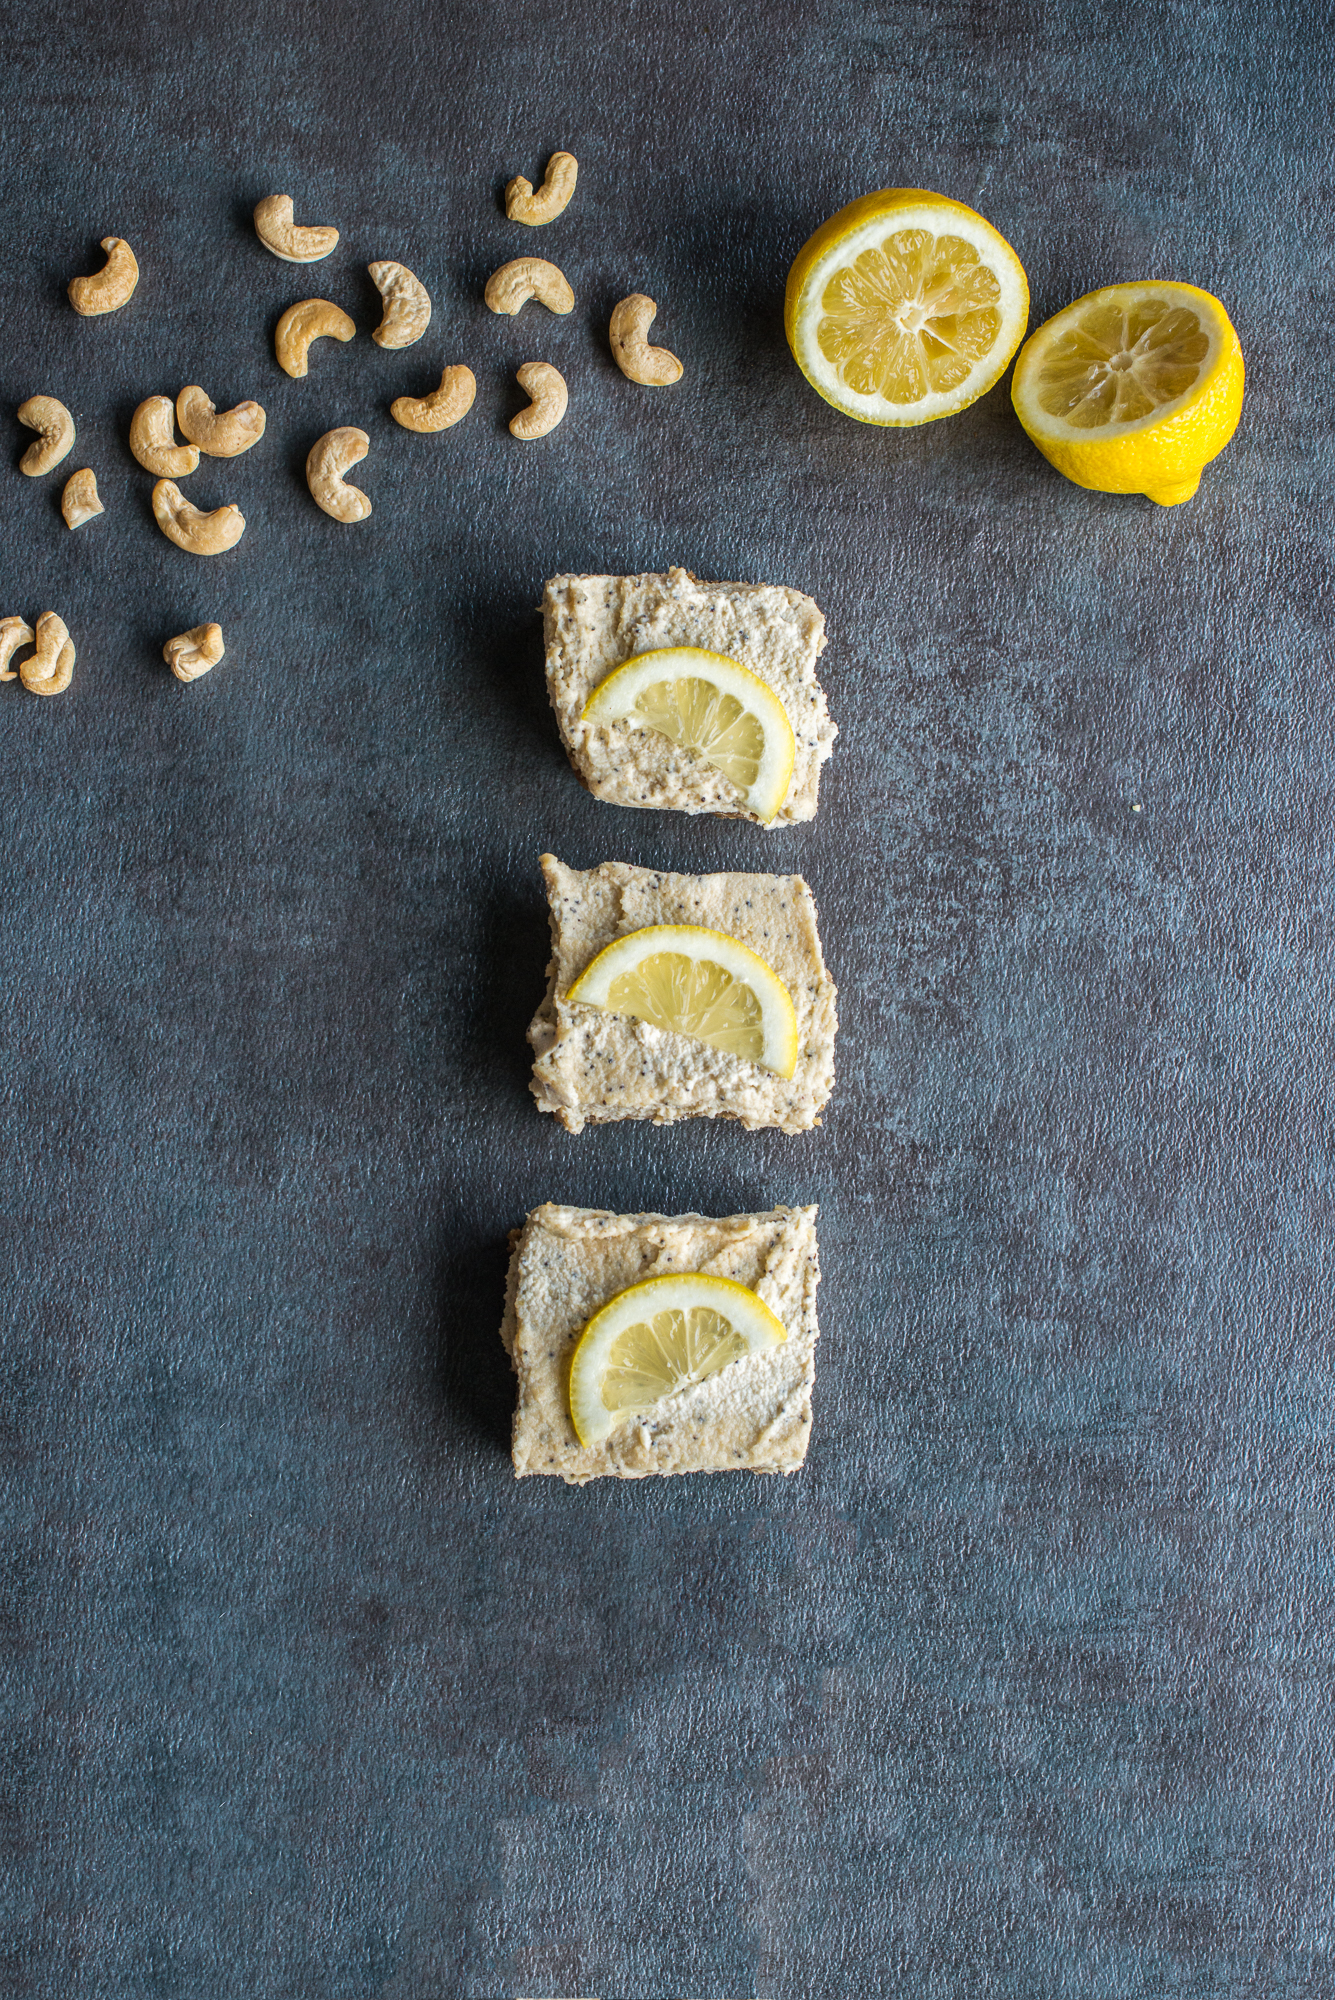 Lemon Poppy Seed Cashew Bars (Gluten Free, Dairy Free, Raw, Vegan)